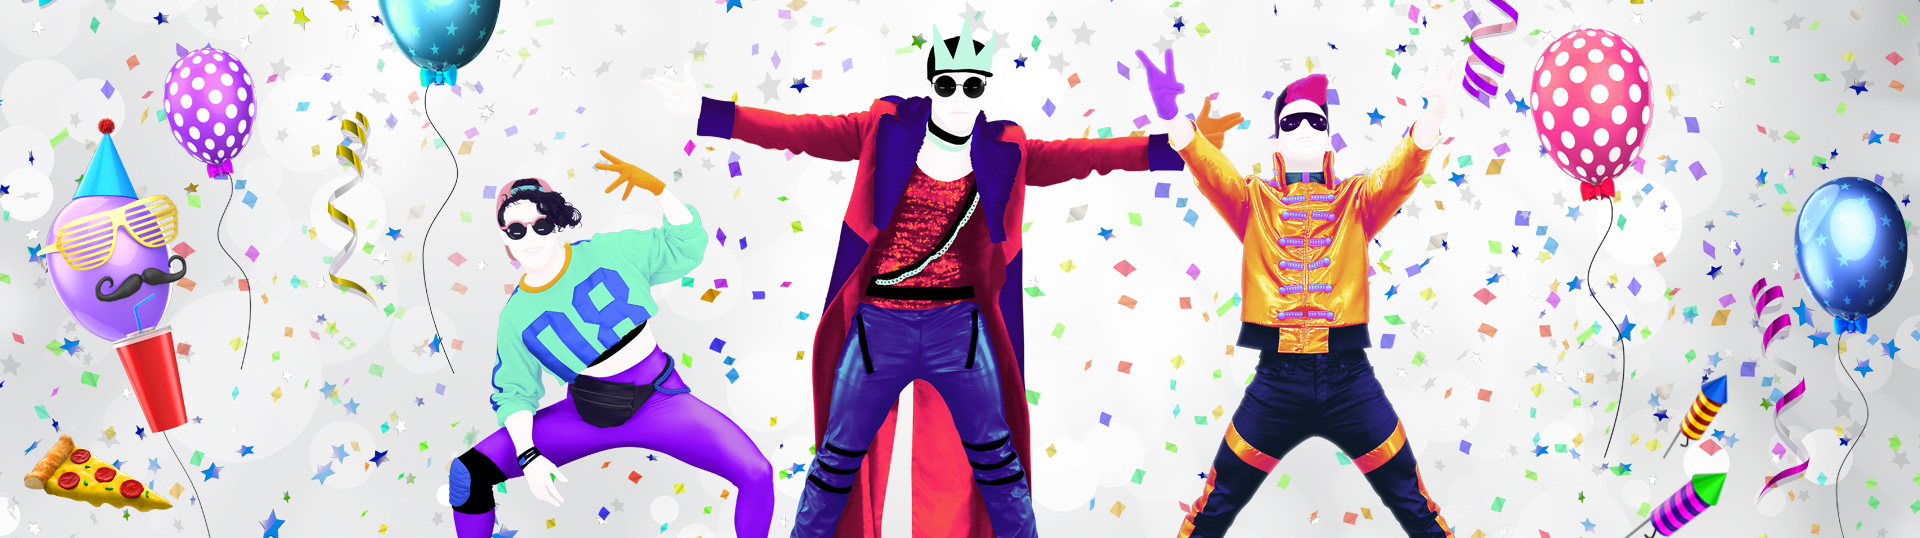 Just Dance 2019 splash art